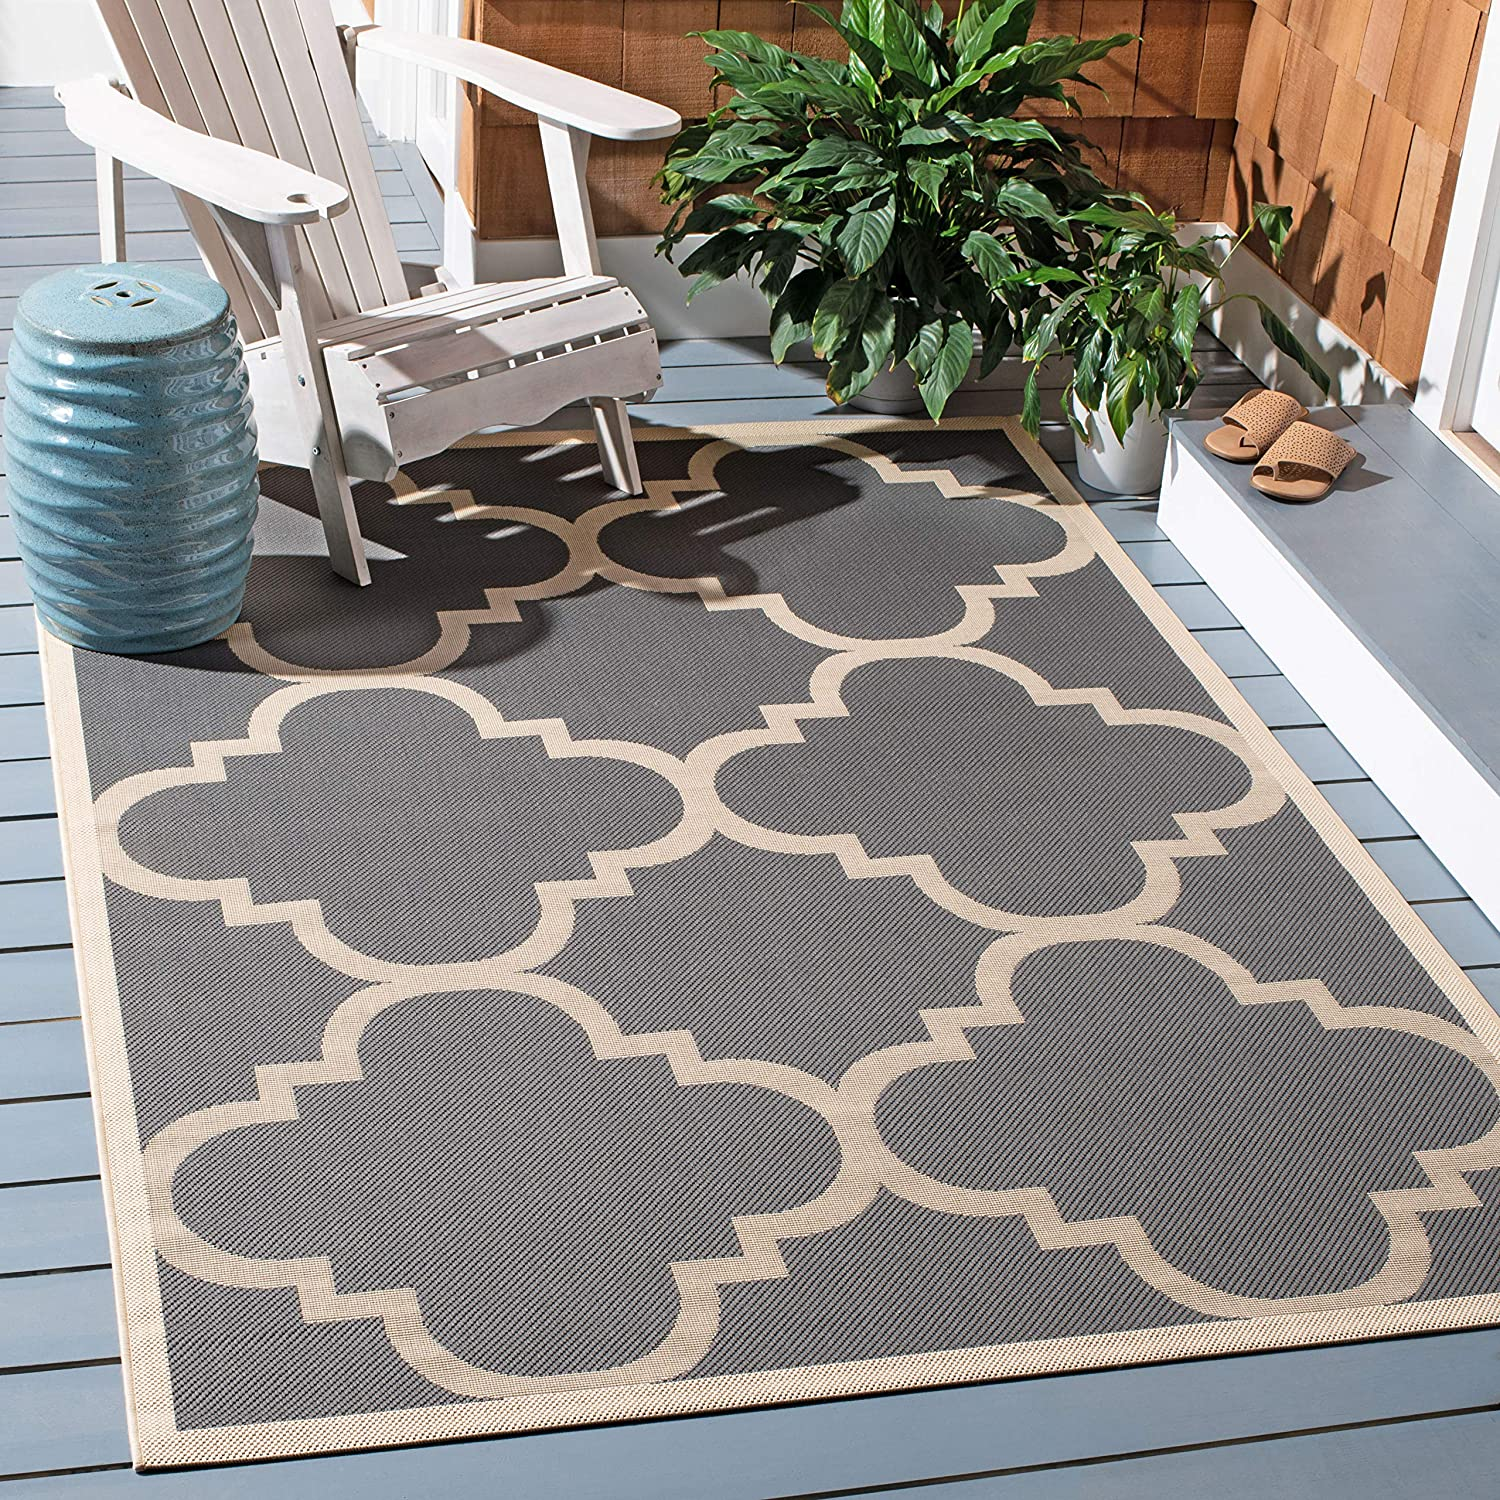 Safavieh Mali Multipurpose Indoor Outdoor Rug Woven Polypropylene Carpet In Grey Beige 120 X 180 Cm Amazon Co Uk Kitchen Home